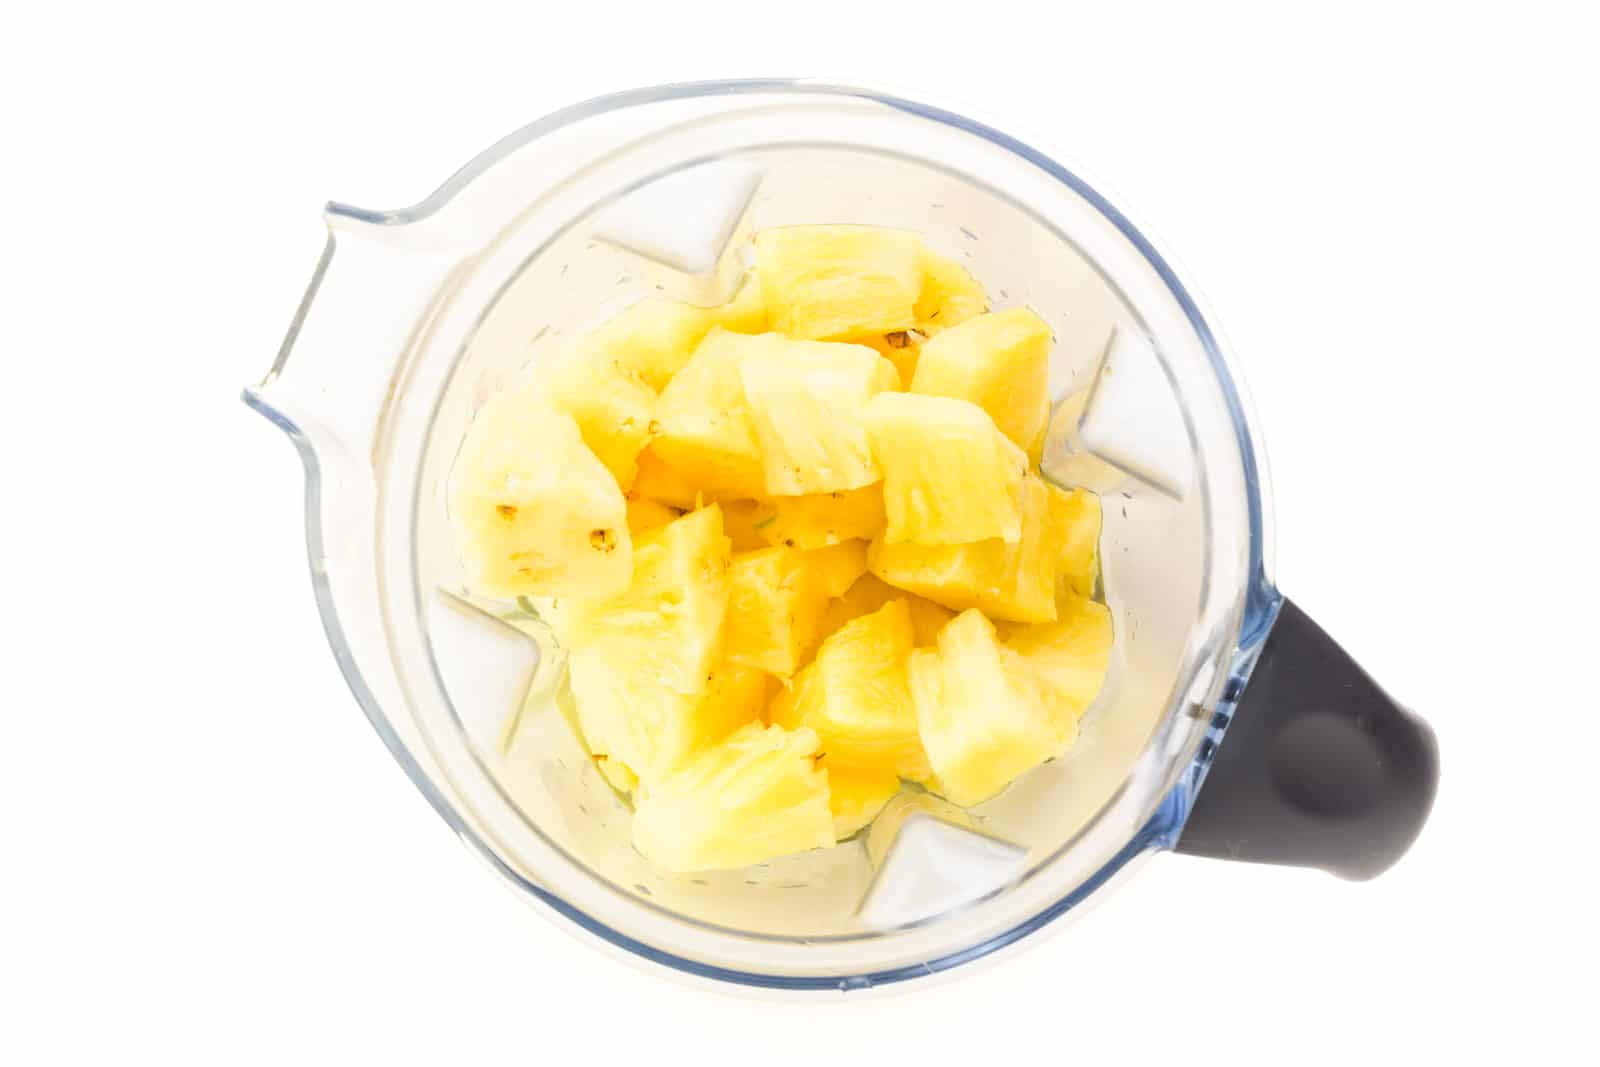 Looking down on pineapple chunks in a blender.